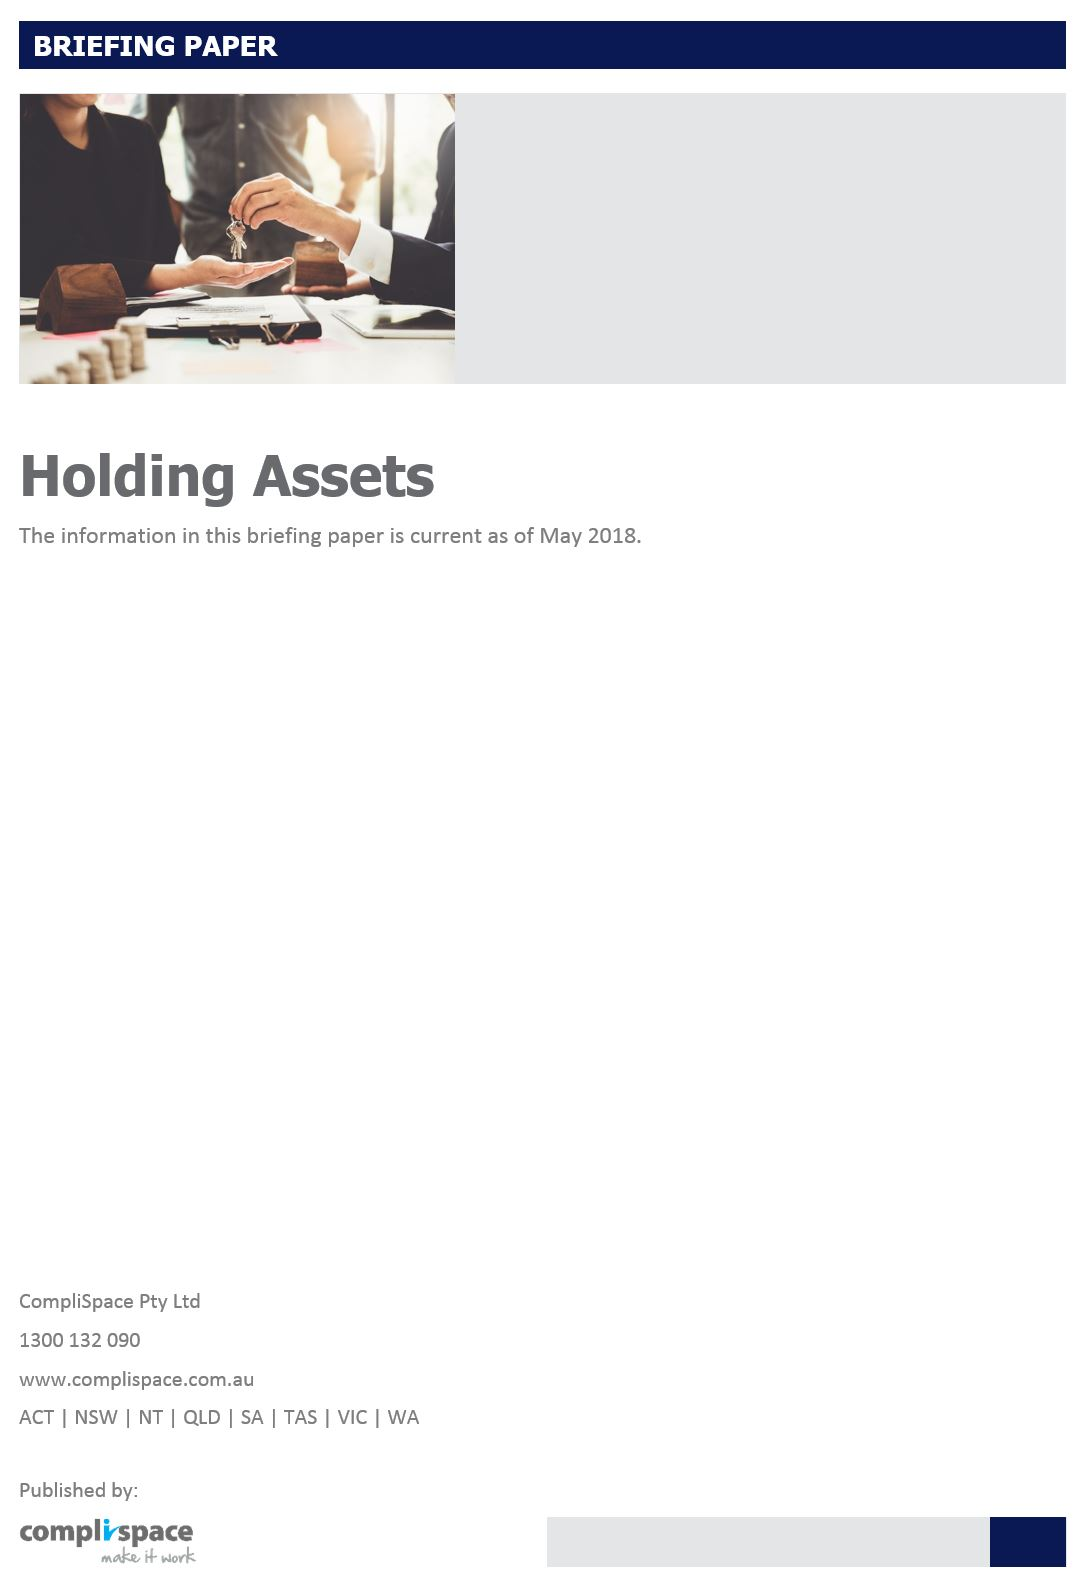 Holding Assets